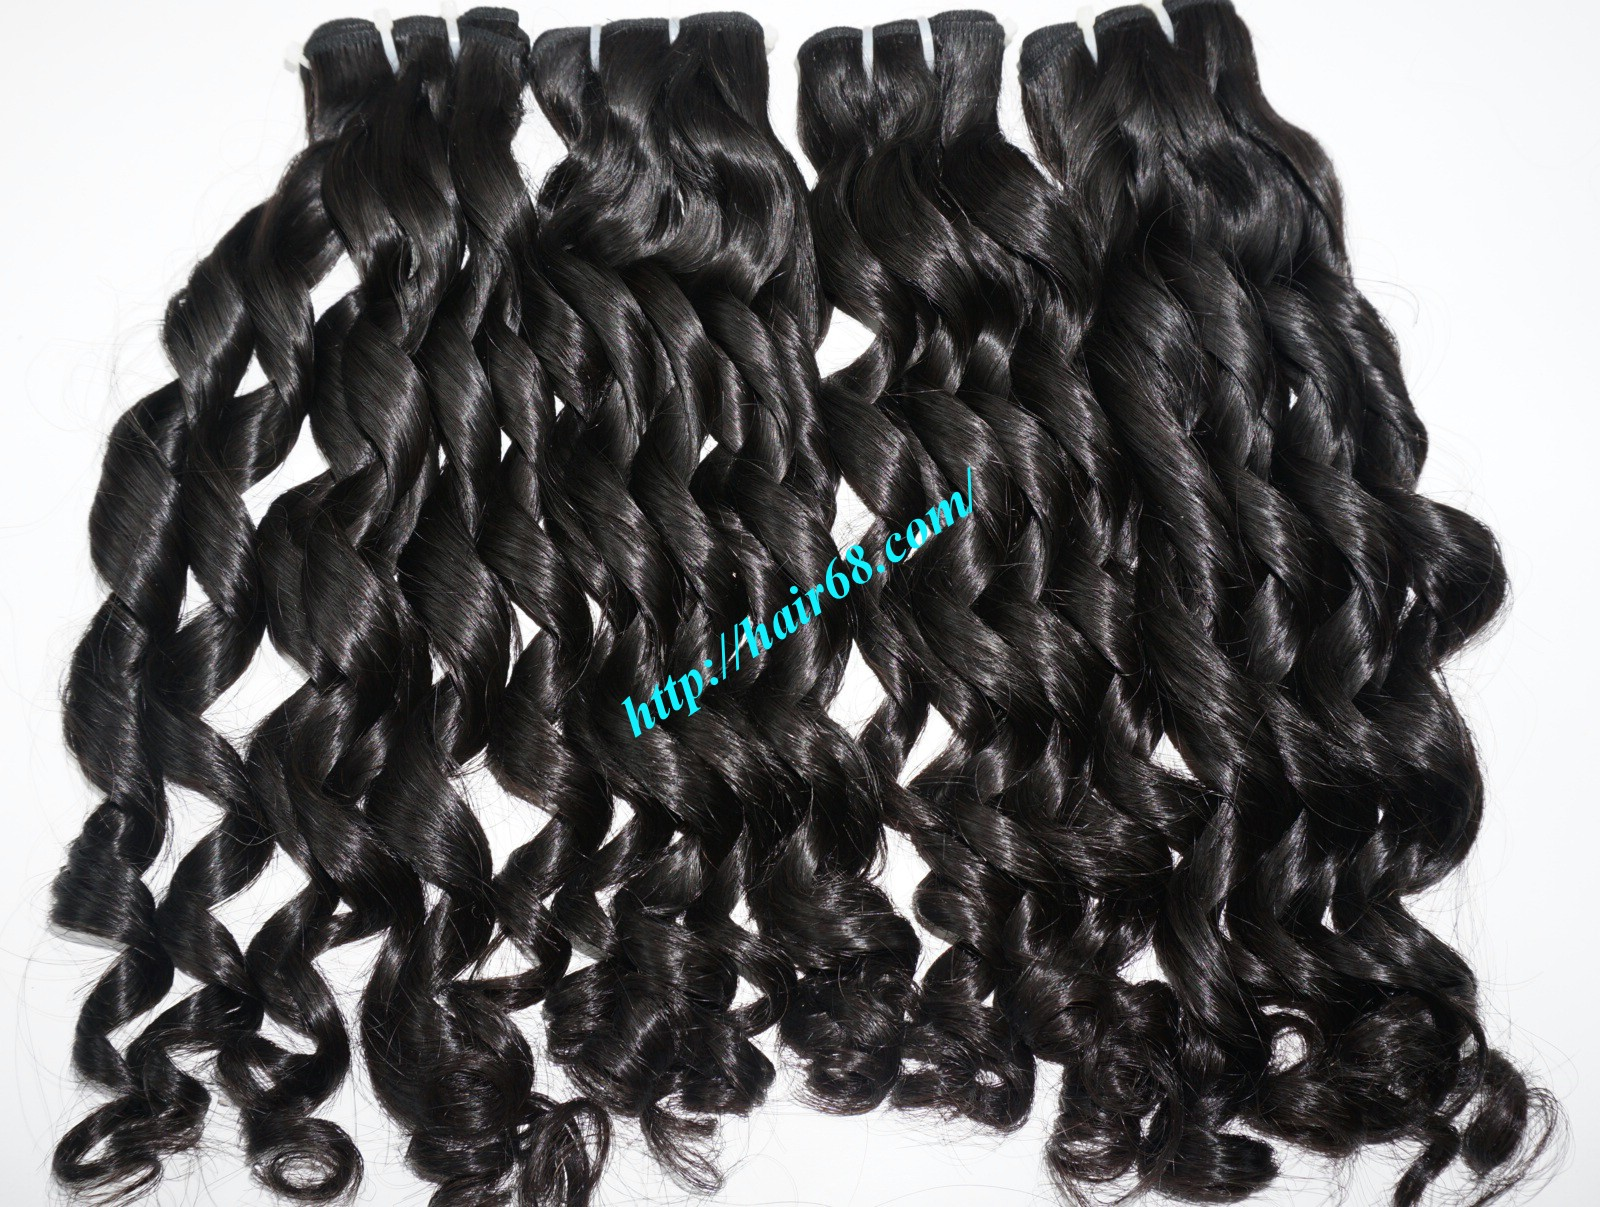 20 inch - Weave Loose Curly Hair Extensions - Double Drawn 7